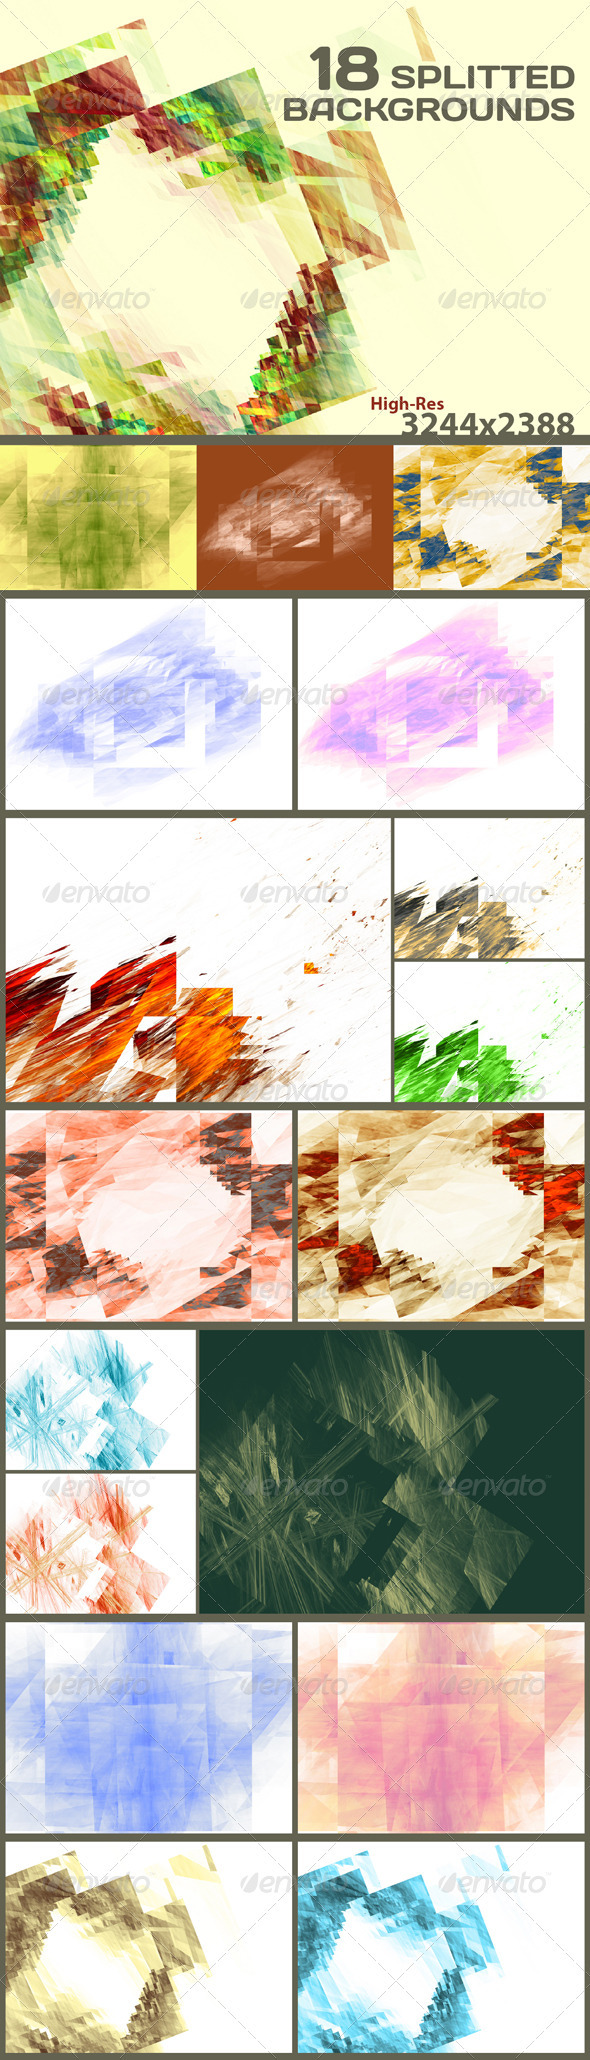 18 Splitted Backgrounds - Abstract Backgrounds